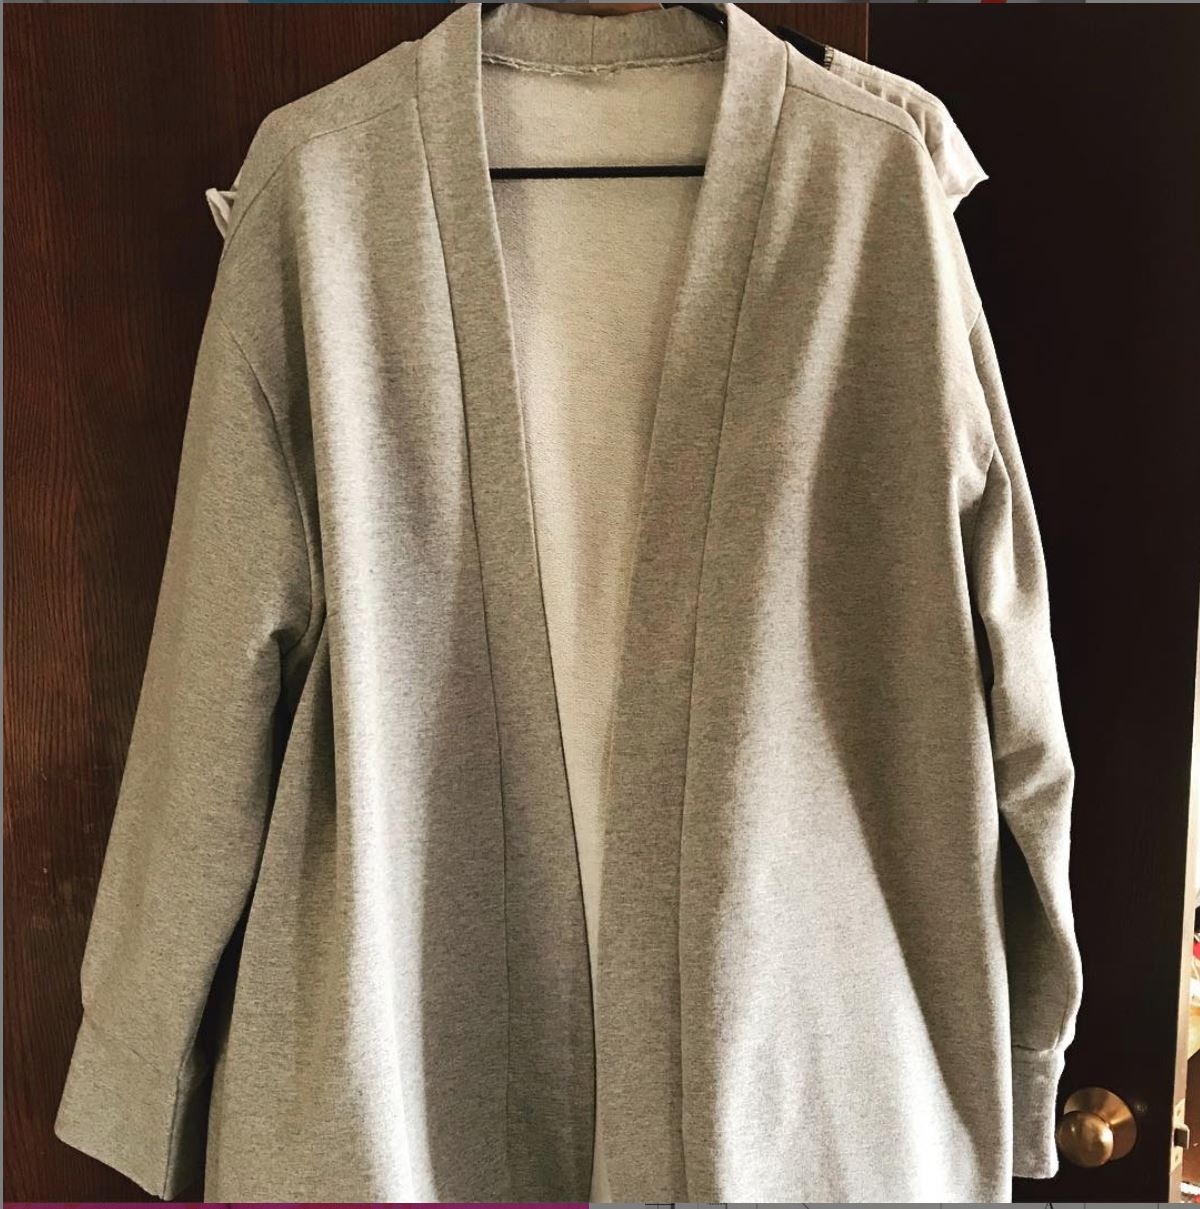 Grey long sleeved cardigan